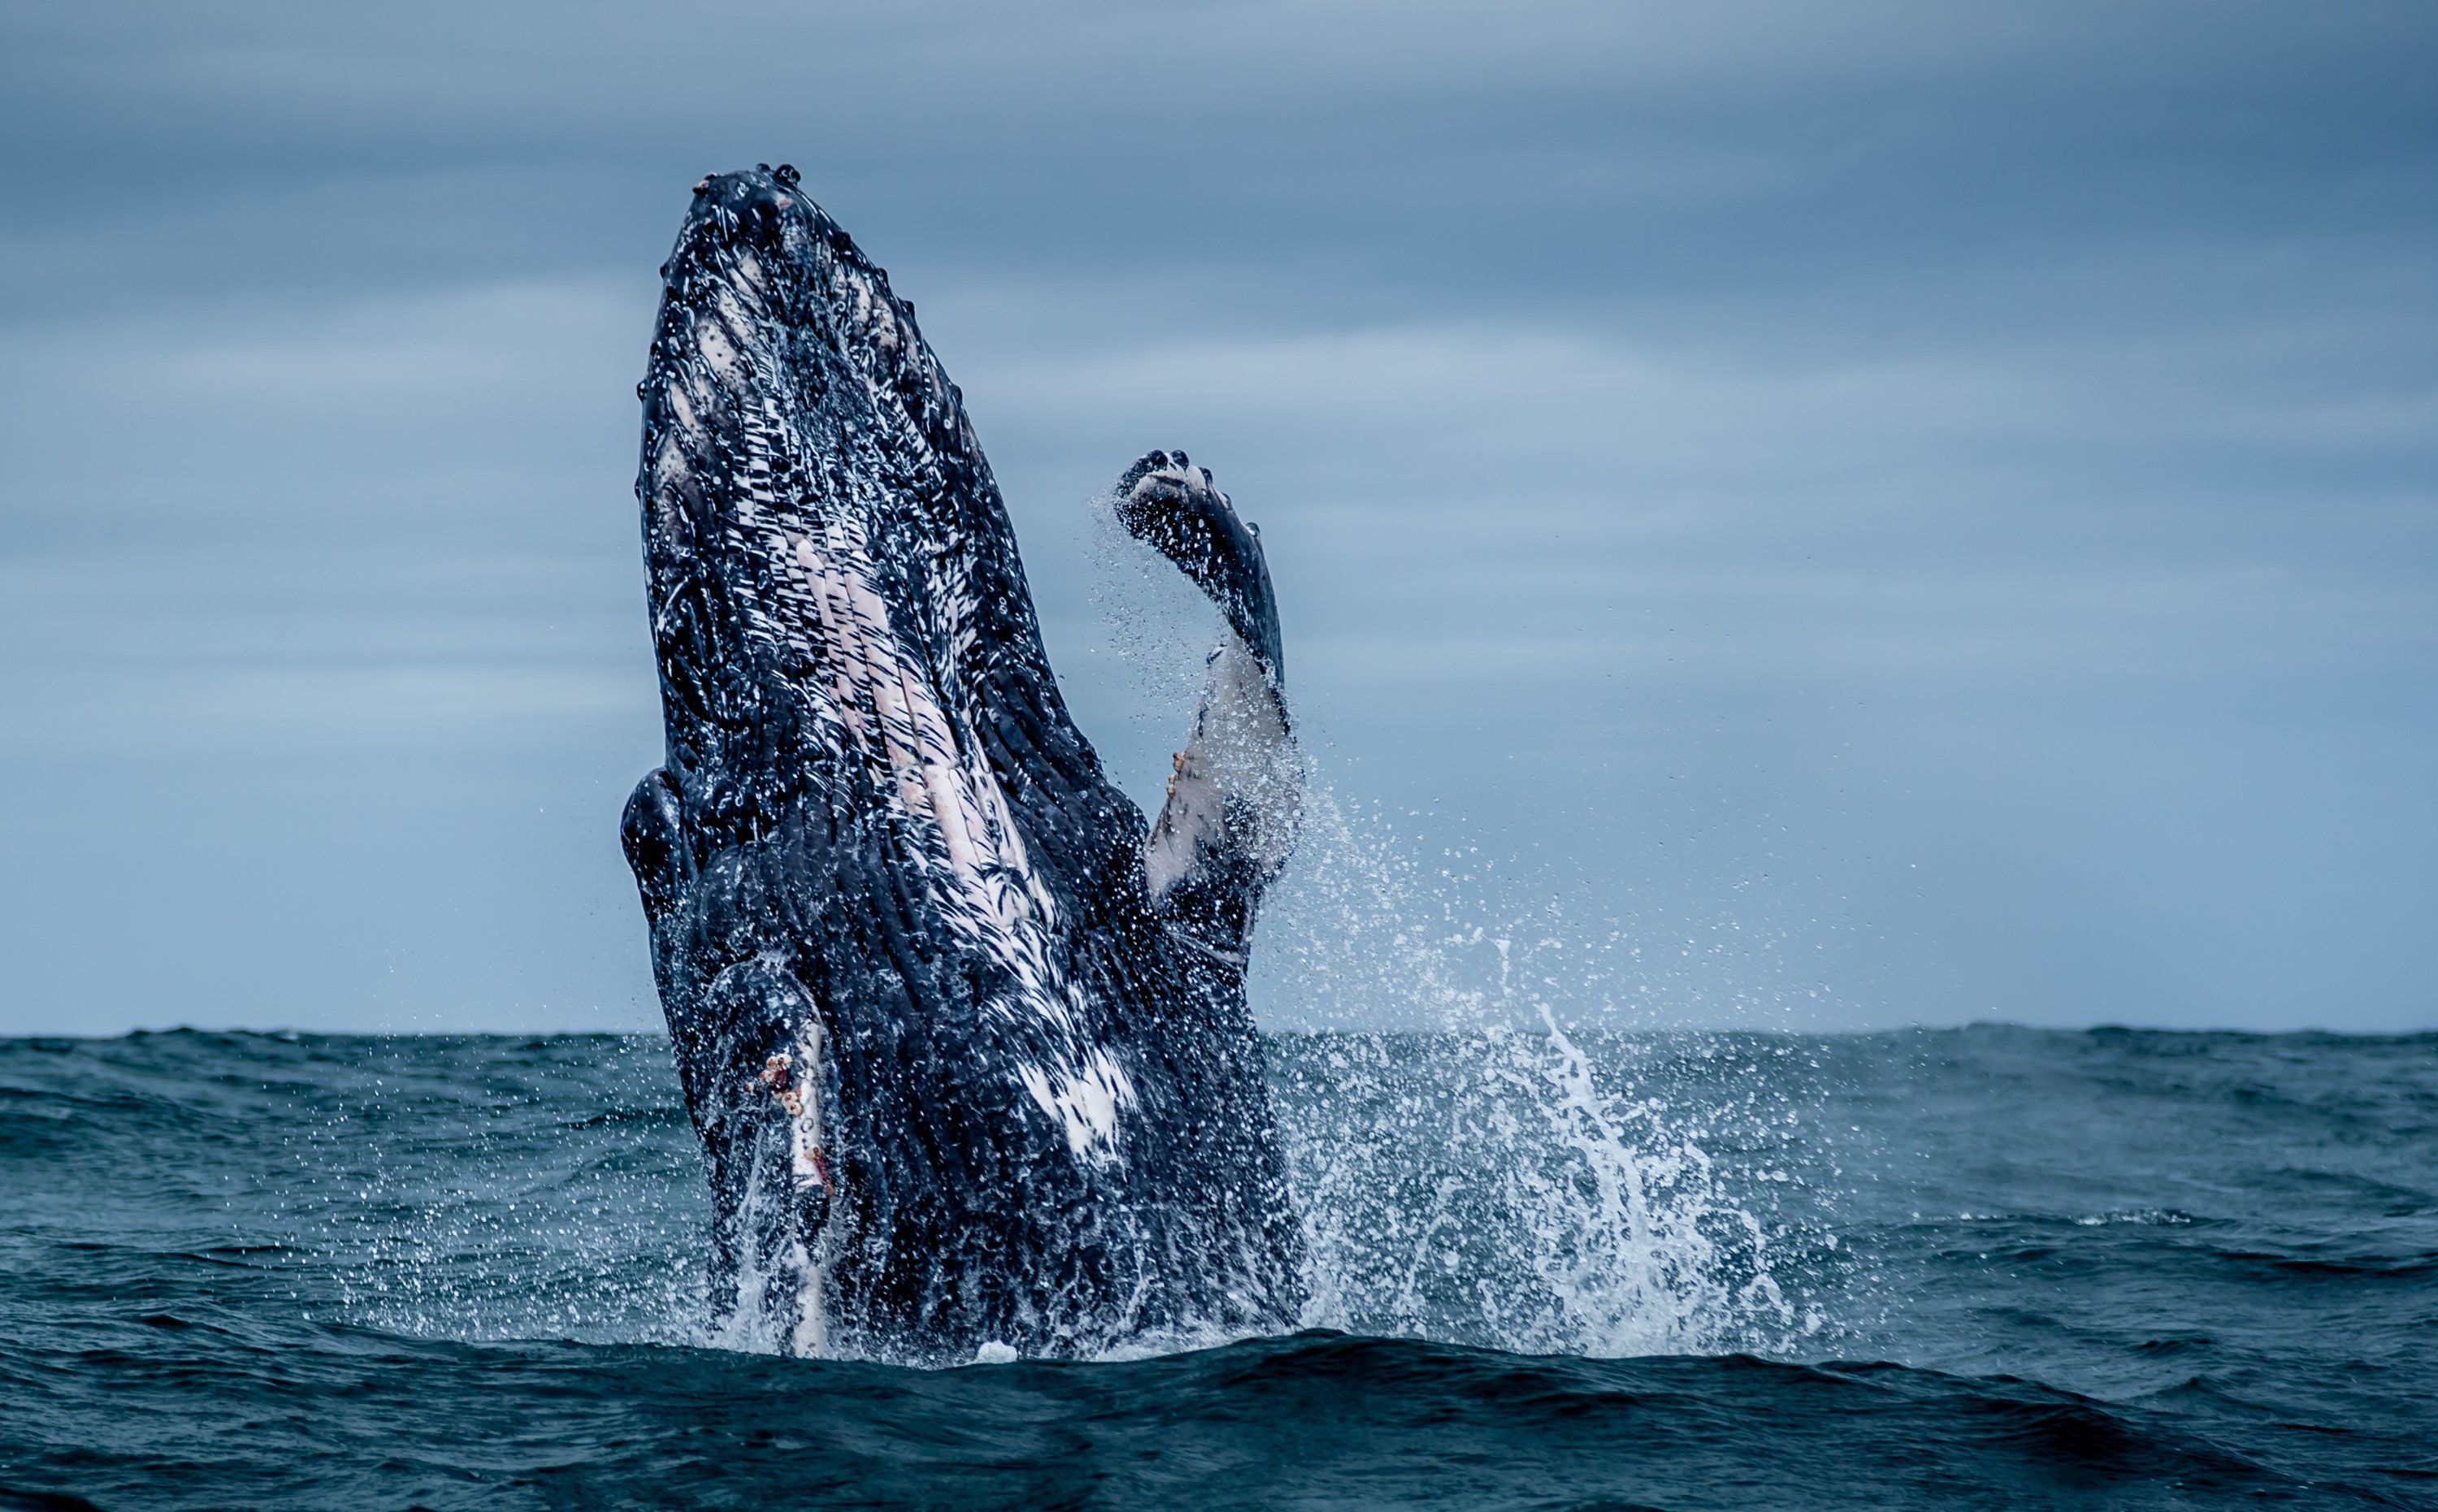 Woman Calls Emergency Services As Whales Swim Near Boat In Dramatic